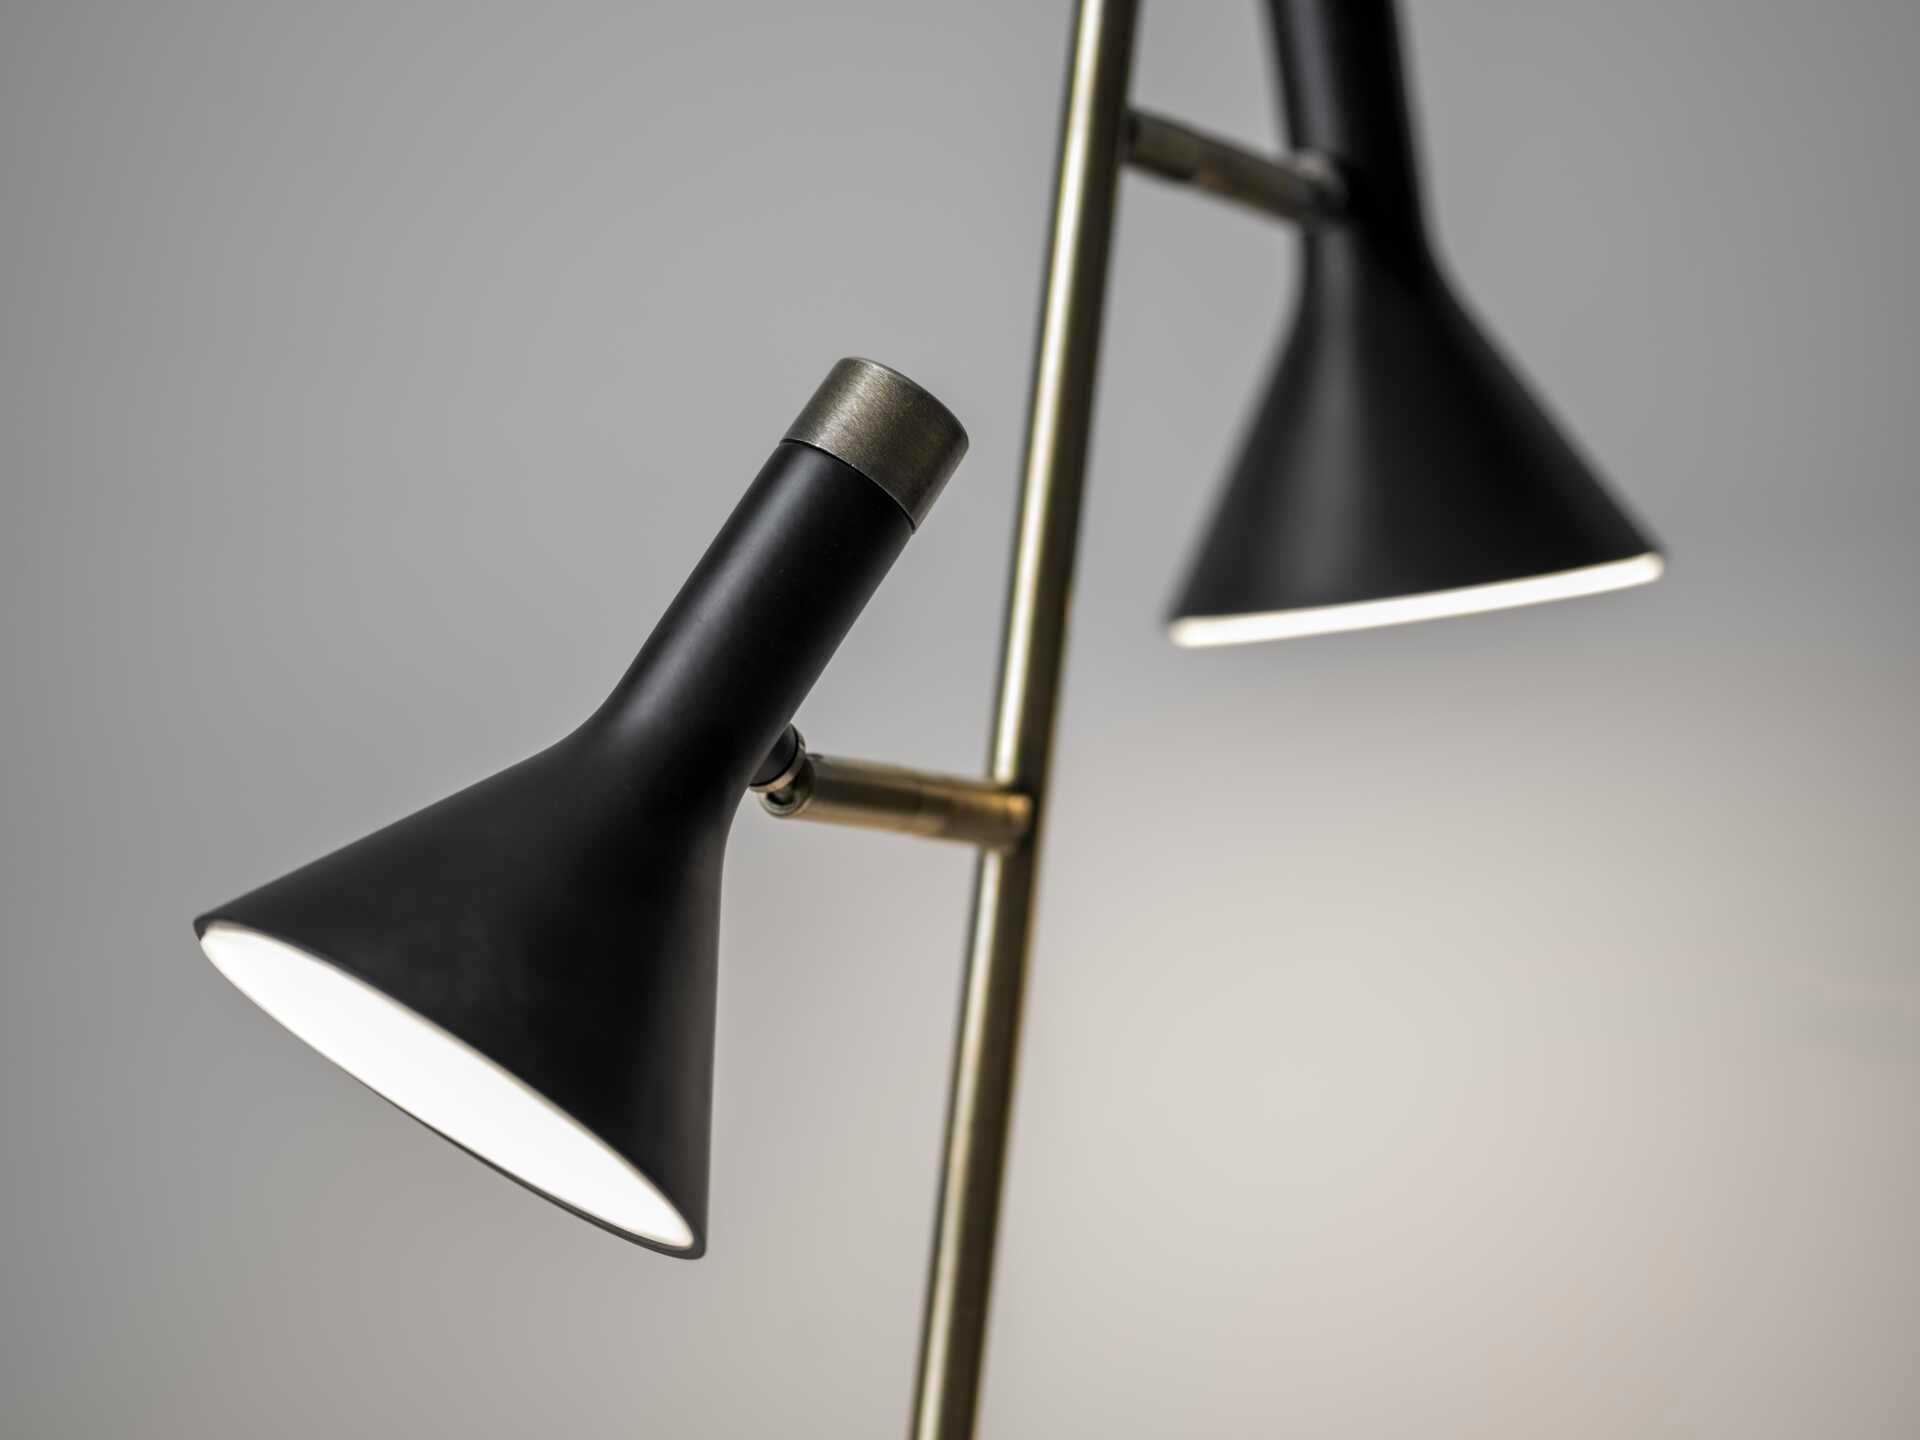 Bennett LED Desk Lamp (Brass/Black) by Adesso Furniture